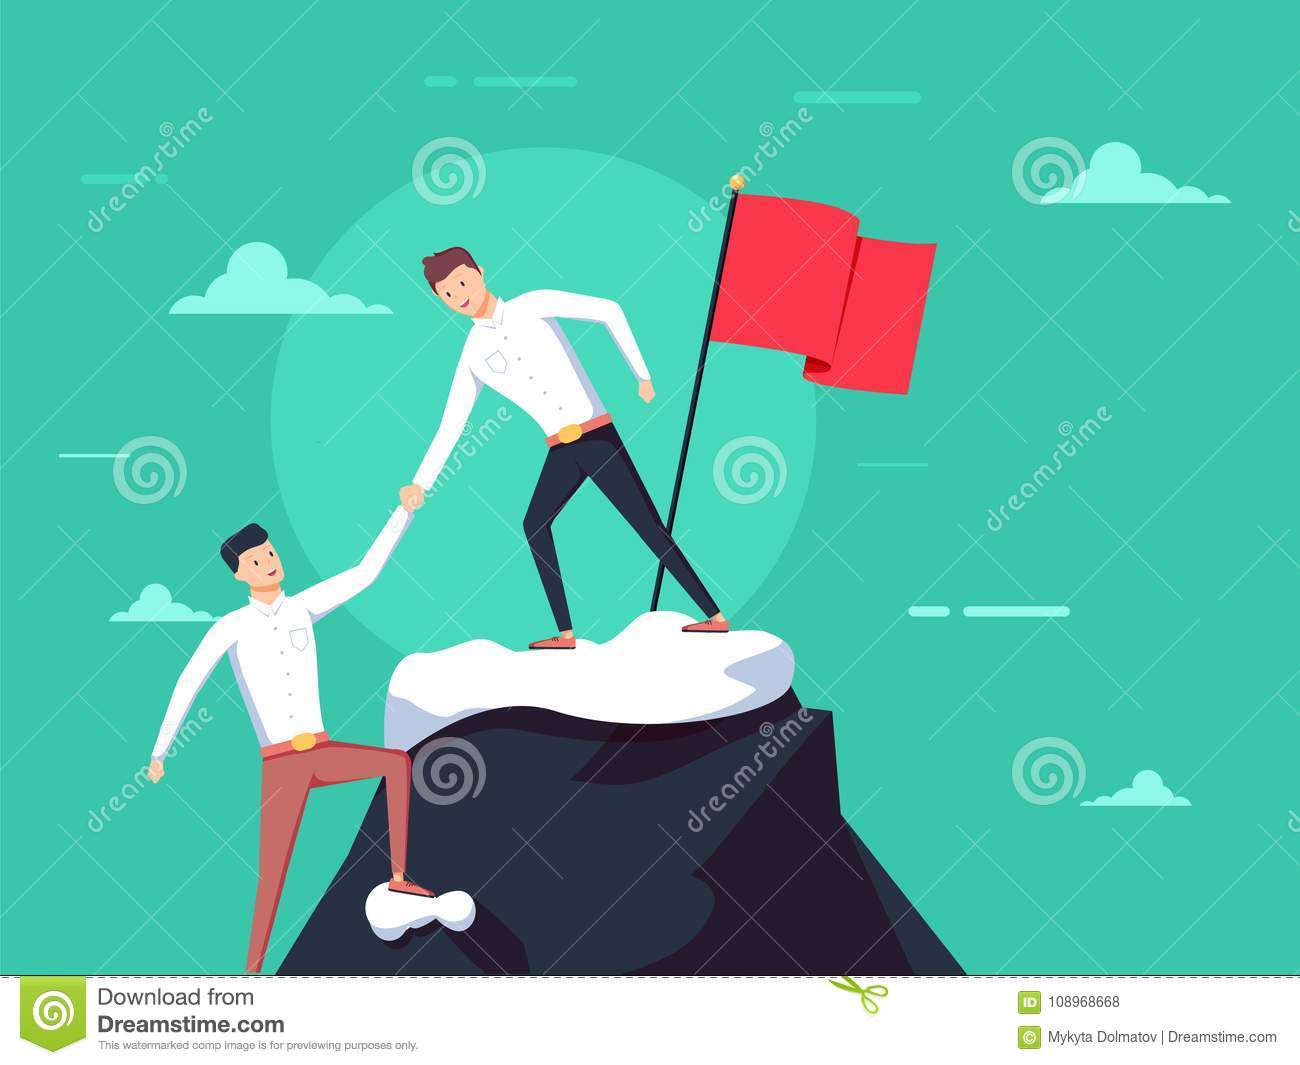 Teamwork concept. Two businessmen together rise on mountain with flag. Give help hand. Collaboration concept.